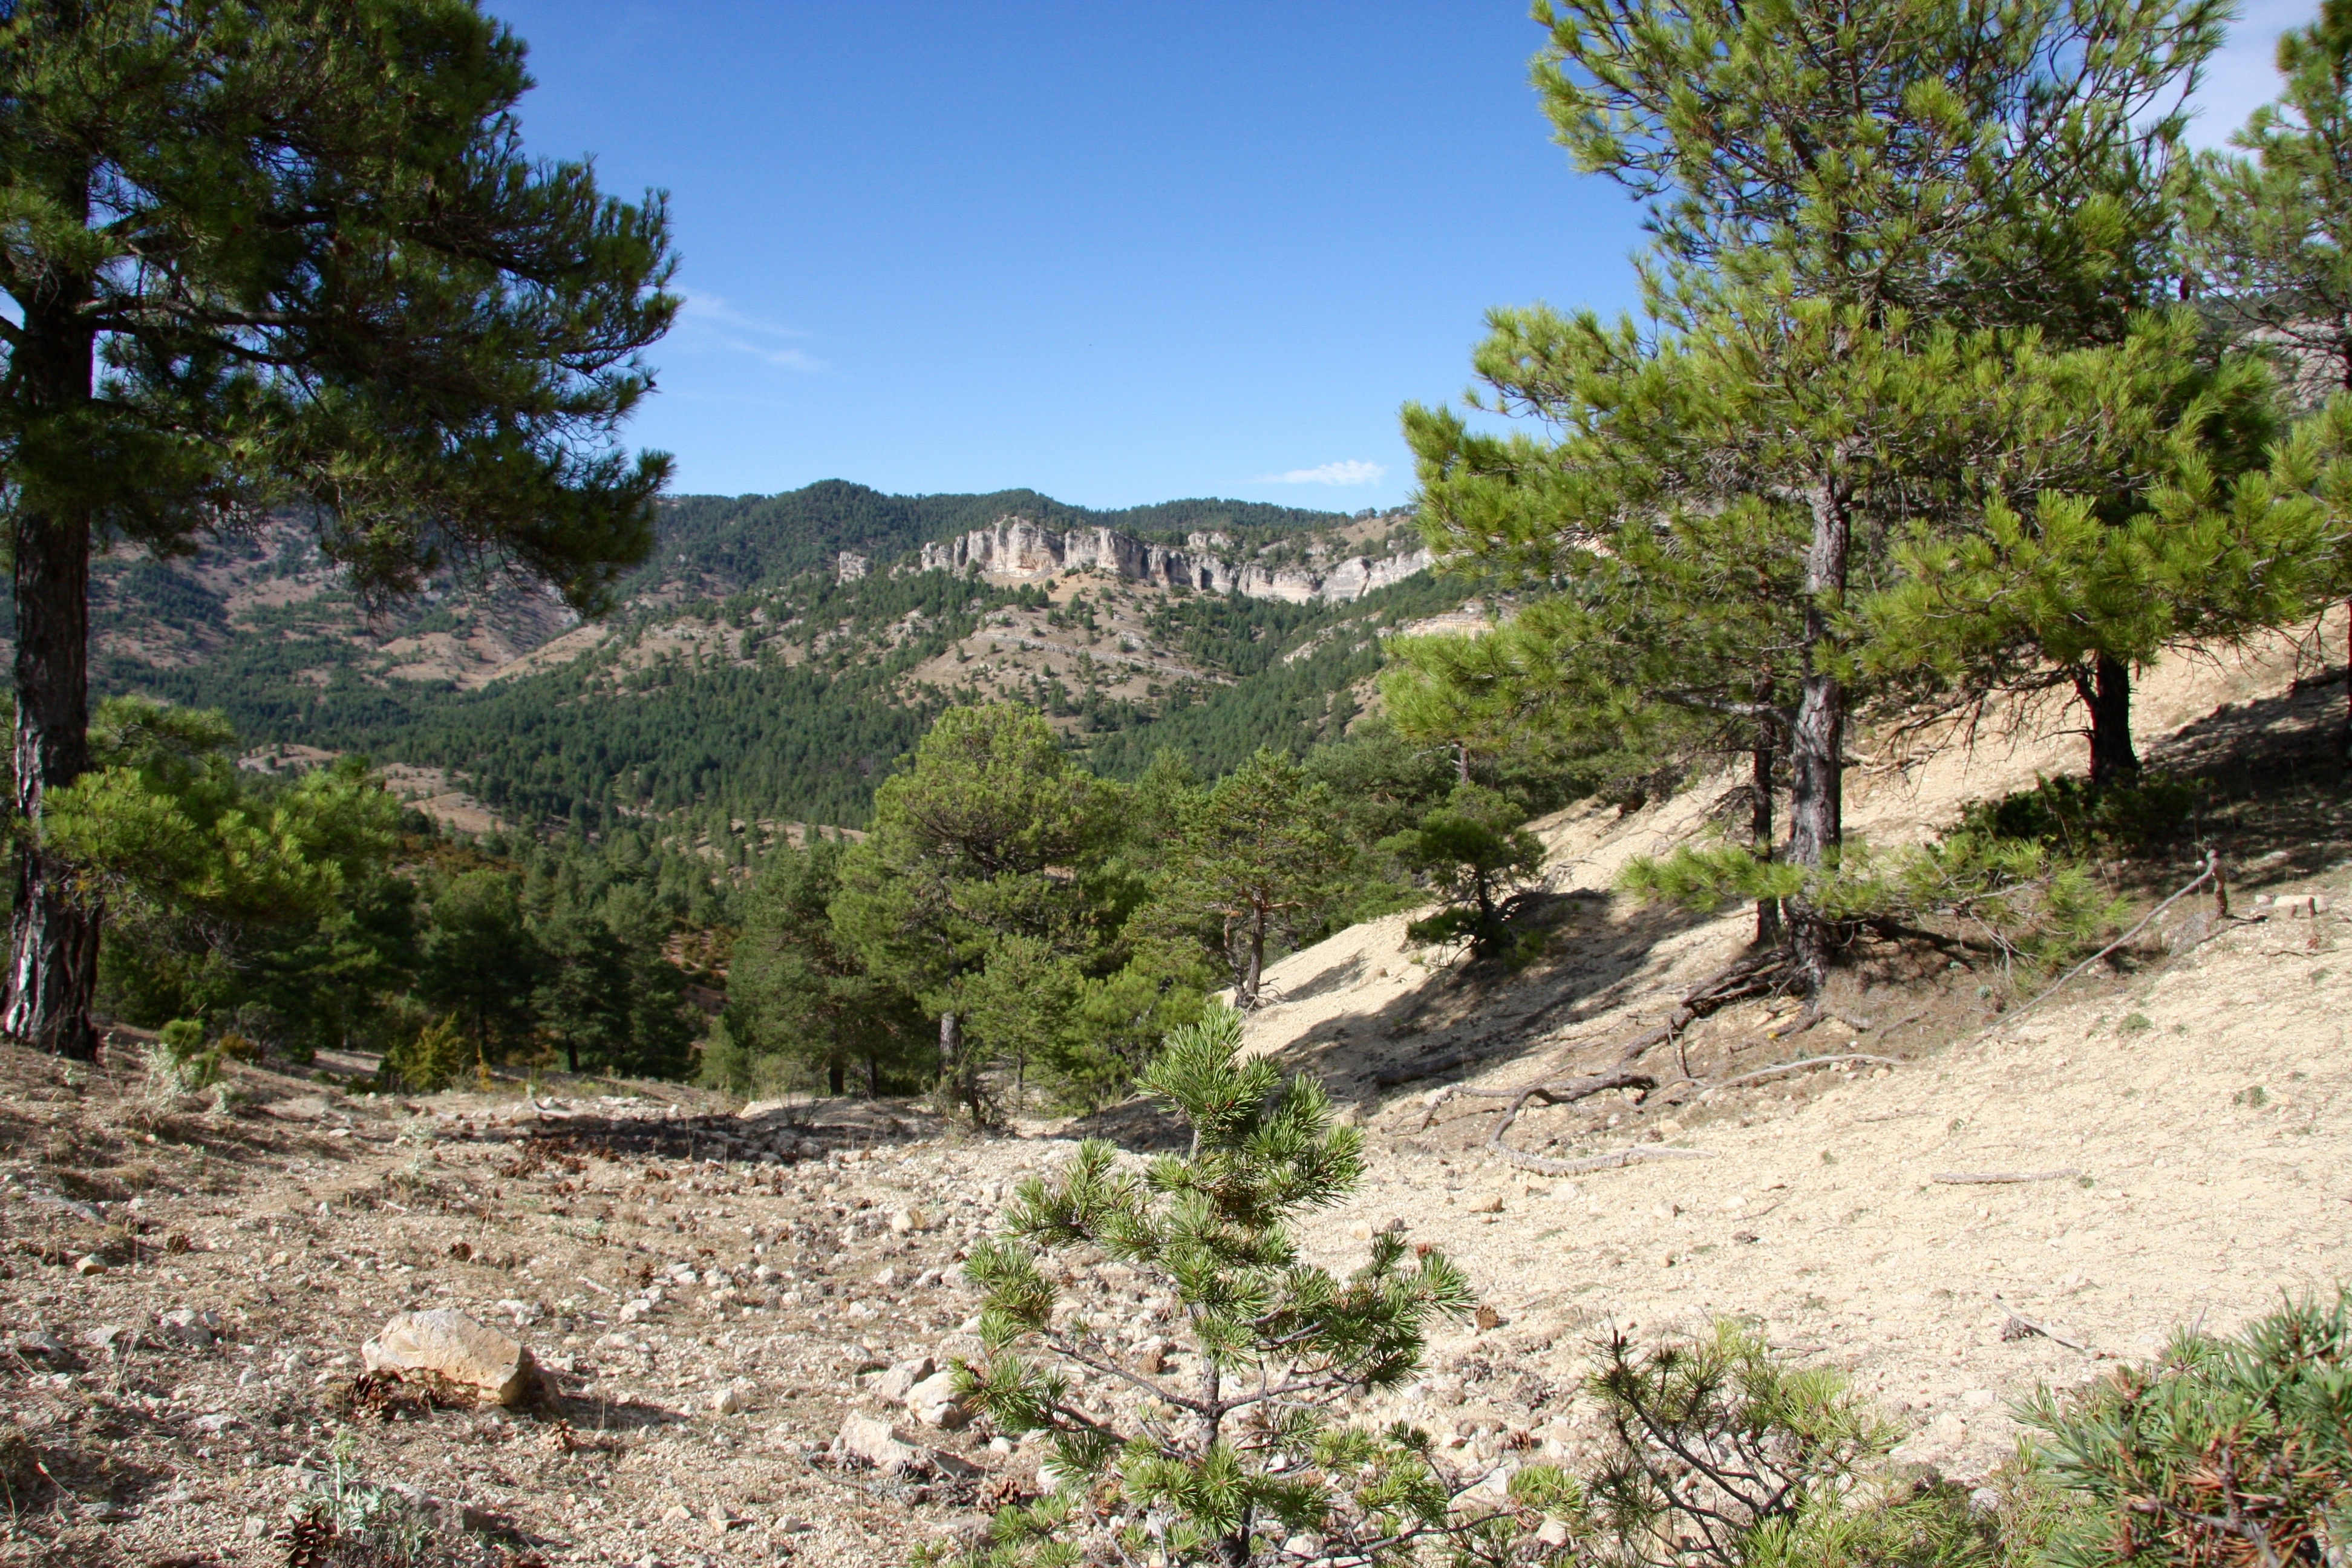 A mountain with pine trees in central Spain